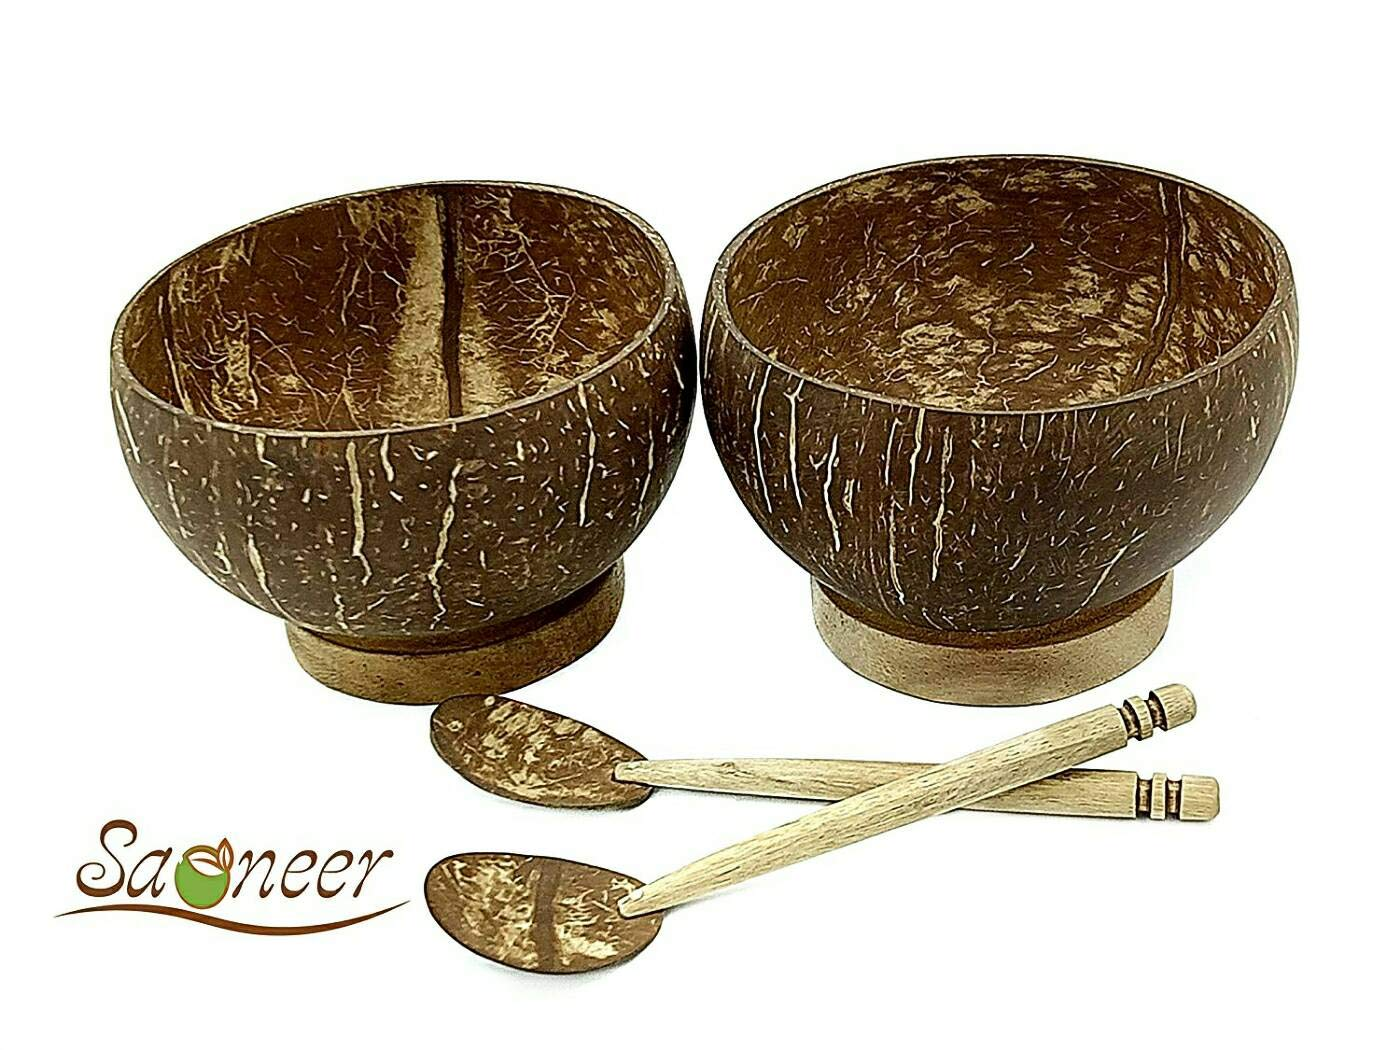 Set of 2 Coconut Bowls + 2 Coconut Saoneer Hand Made Natural Wooden Coconut Shells Bowls and Spoons Gift Set Smoothie /& Coco Bowl Gifts Bowl Serving Bowl and Spoon Vegan Home Organic Eco Friendly